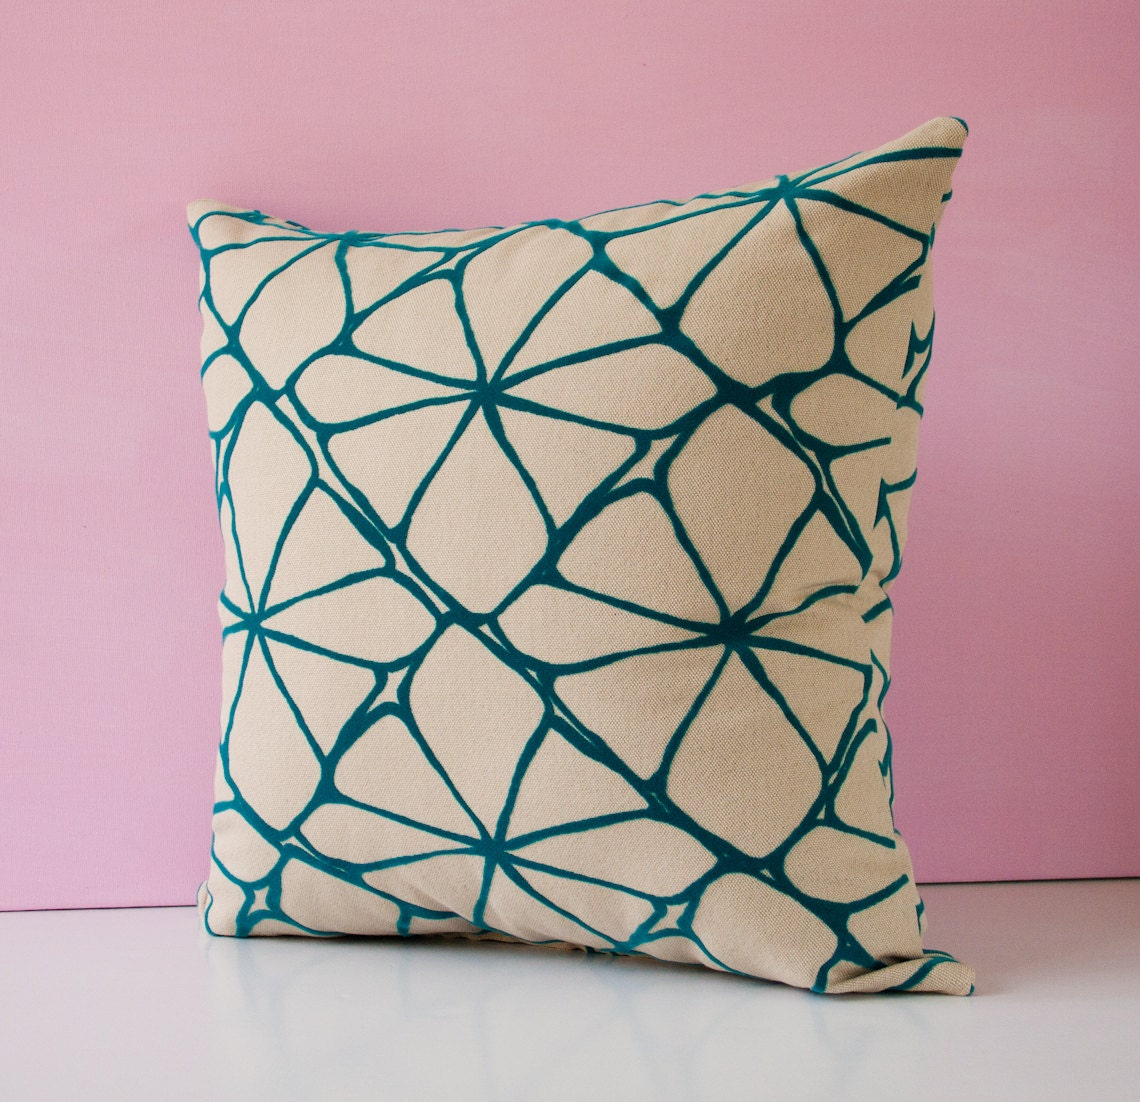 Throw Pillow Case Pattern : Turquoise pattern pillow cover decorative pillow throw